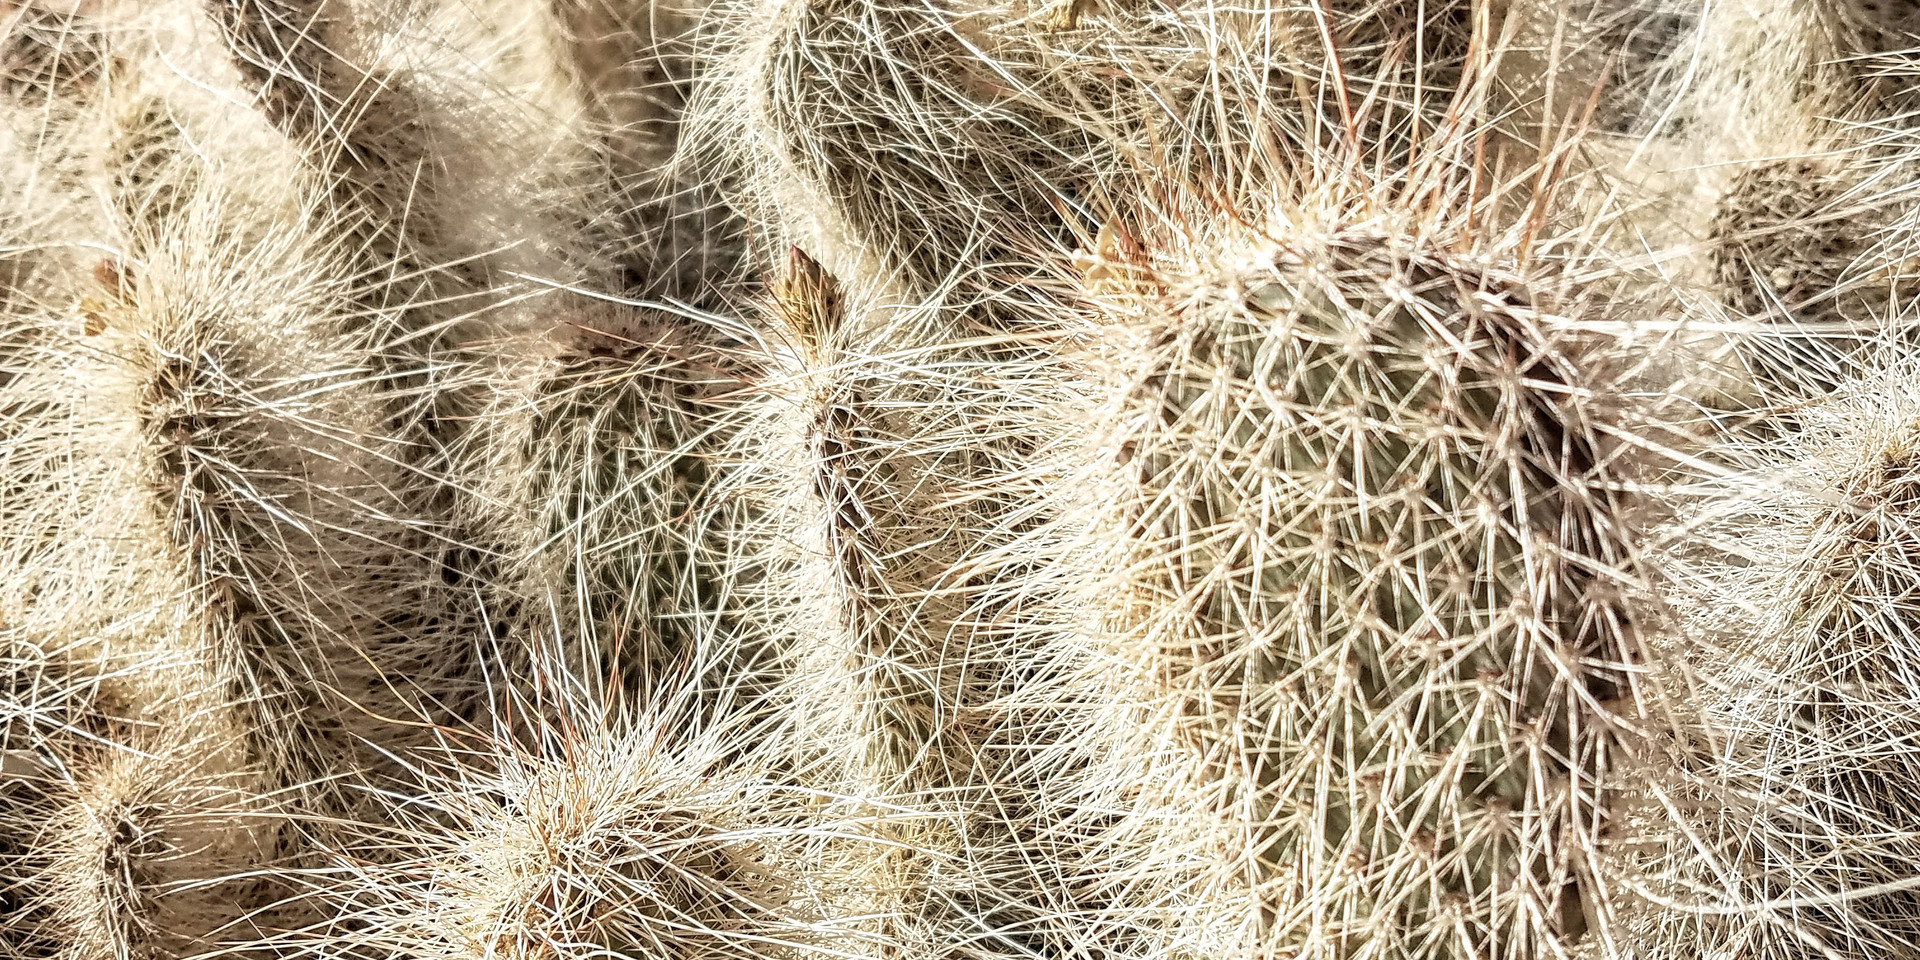 Cholla Cactus from the cholla gardens in Joshua Tree National Park